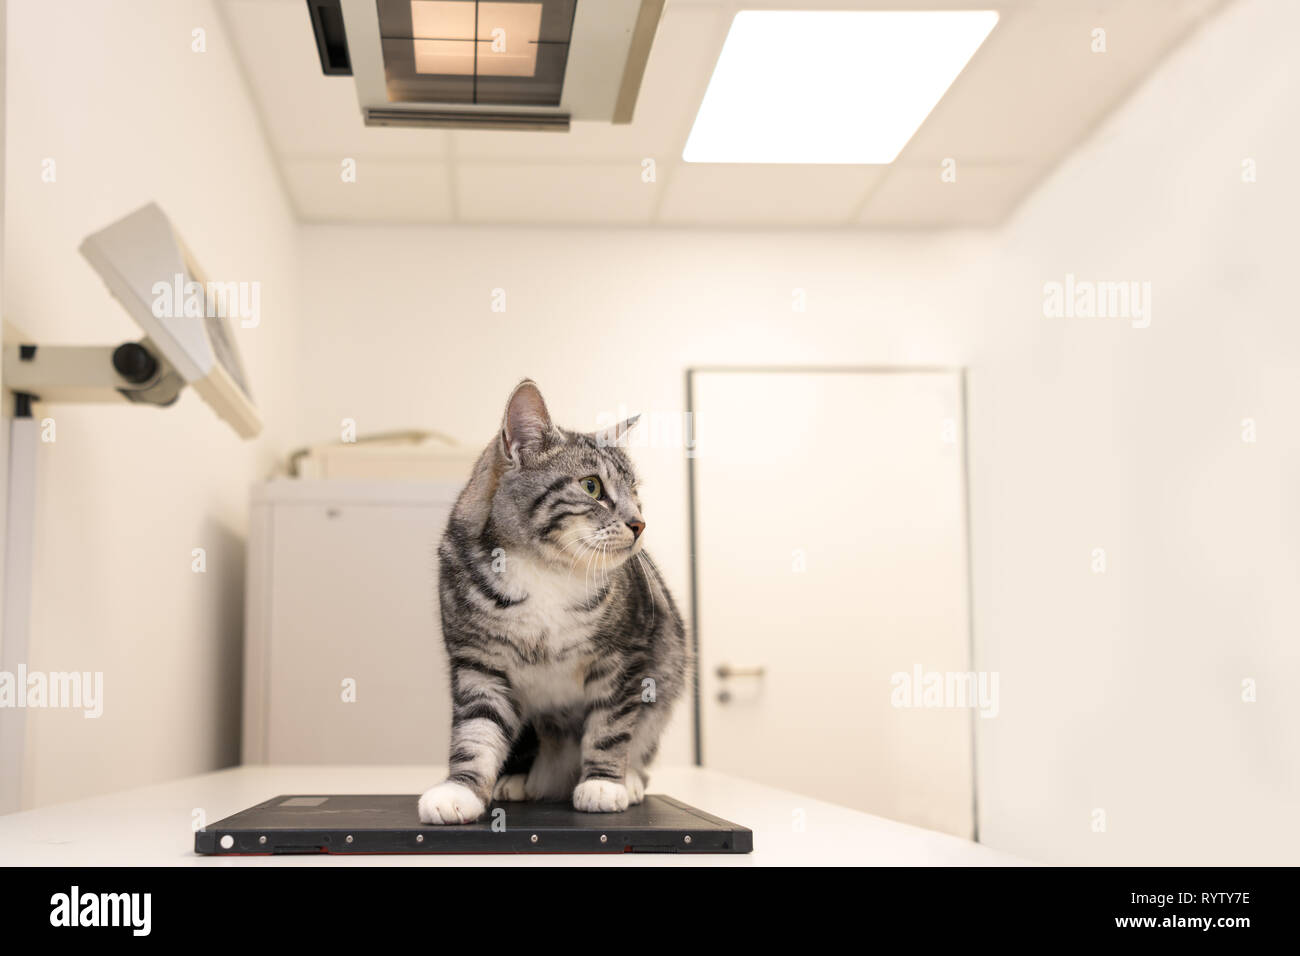 Cat in the veterinary practice. Veterinarian is X-ray the animal - Stock Image